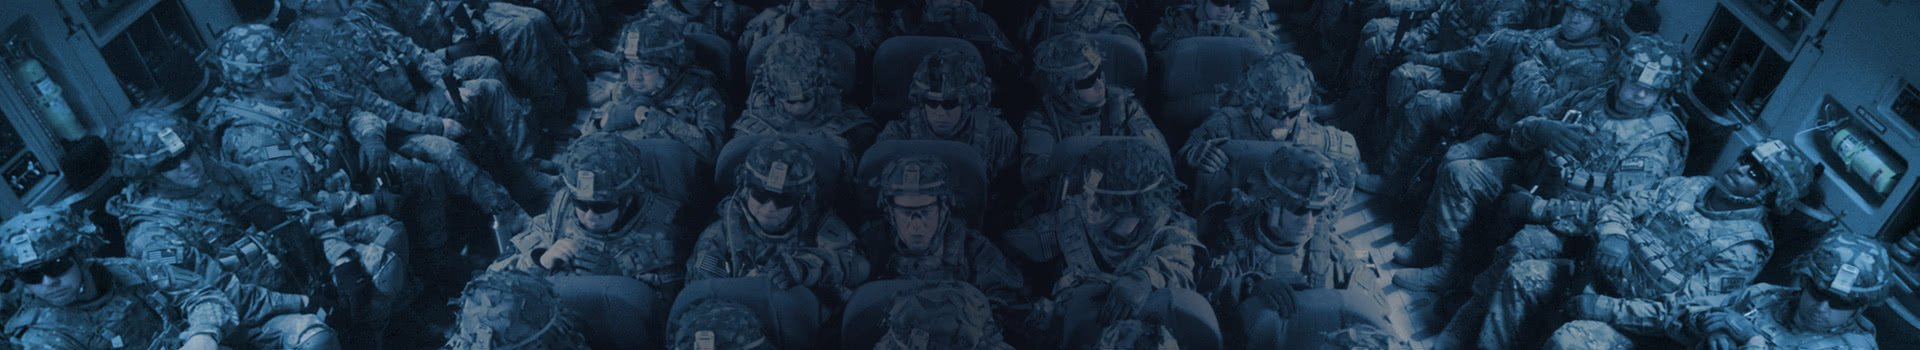 Fall3nWarrior Gaming Support Us Page Header Background soldiers sigting in rows of seats inside an aircraft cargo hold.